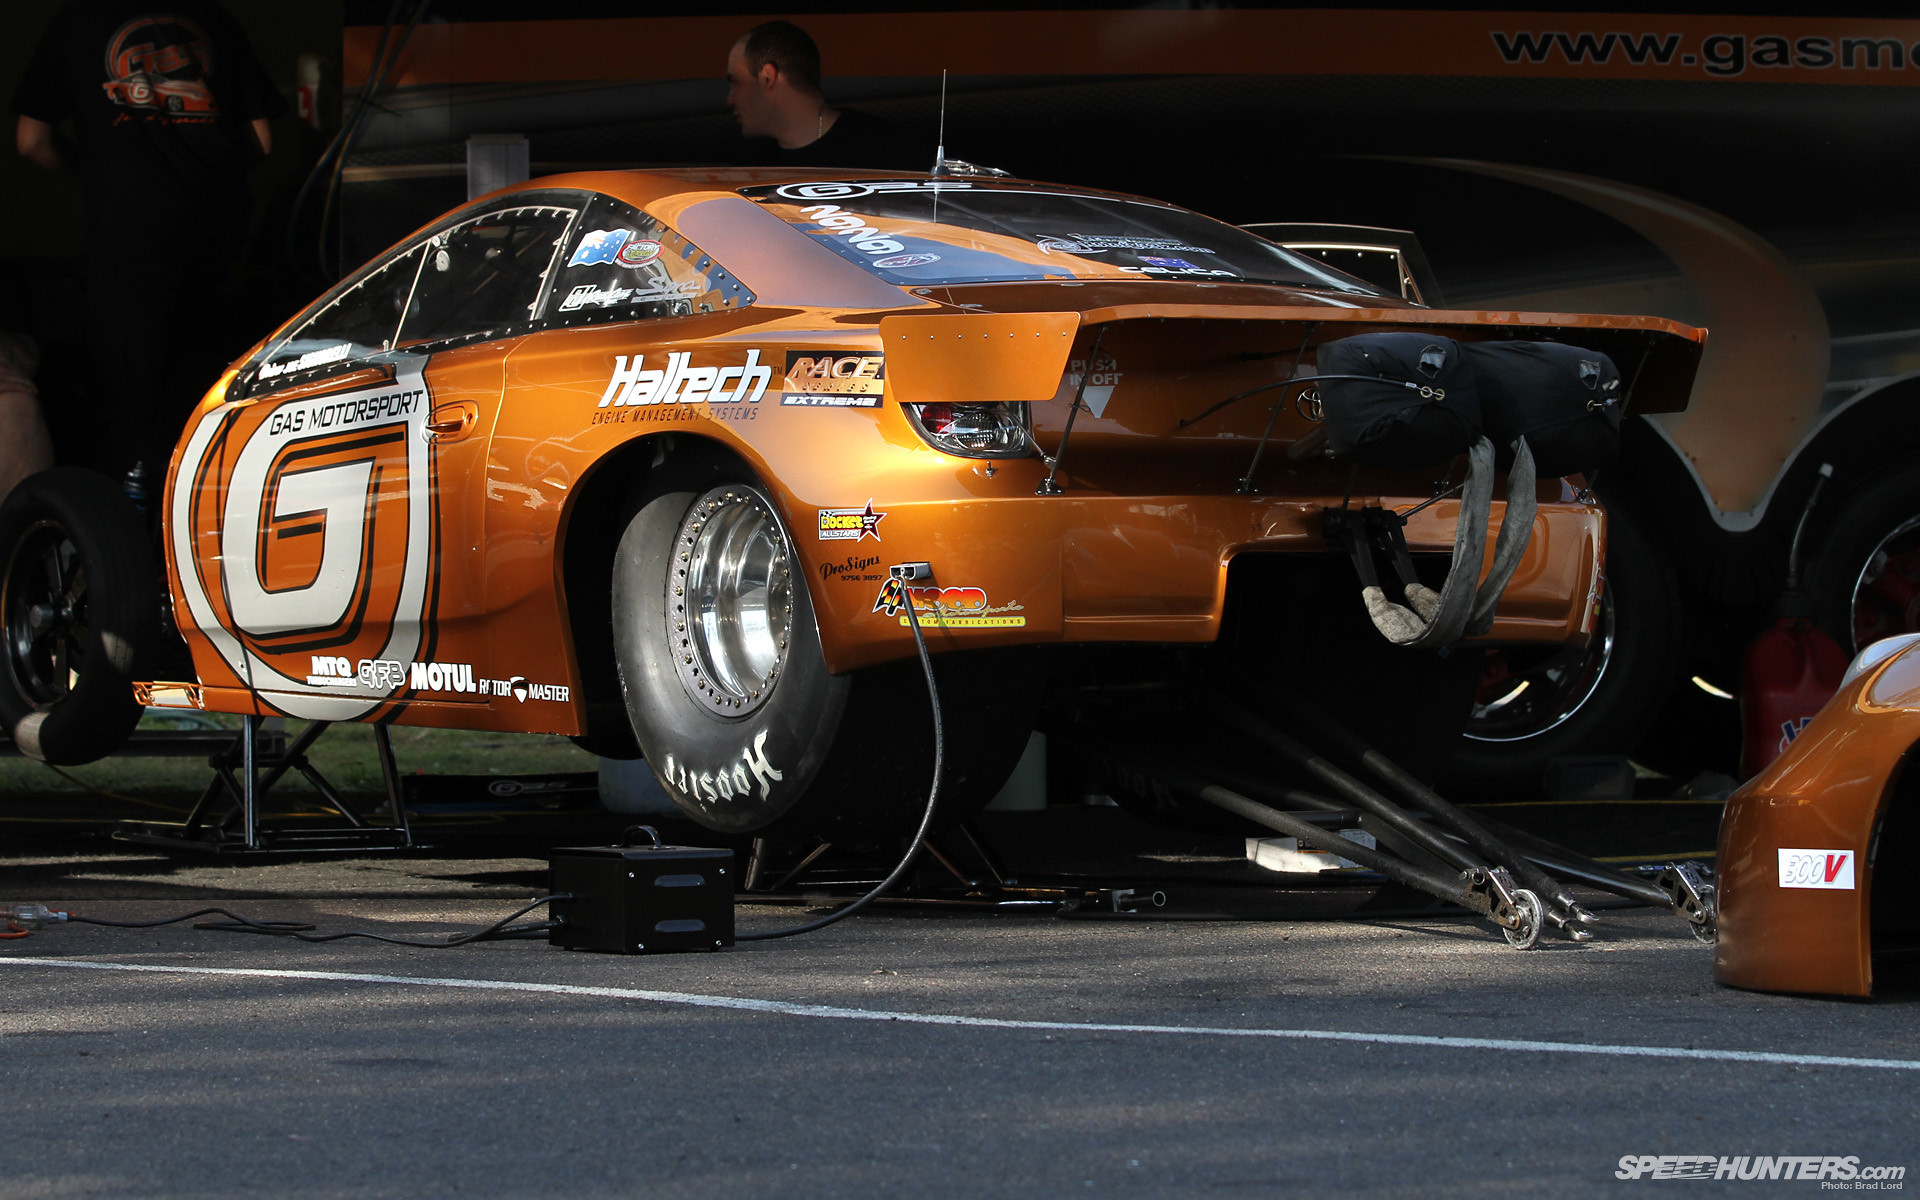 Res: 1920x1200, Vehicles - Drag Racing Toyota Celica Race Car Wallpaper